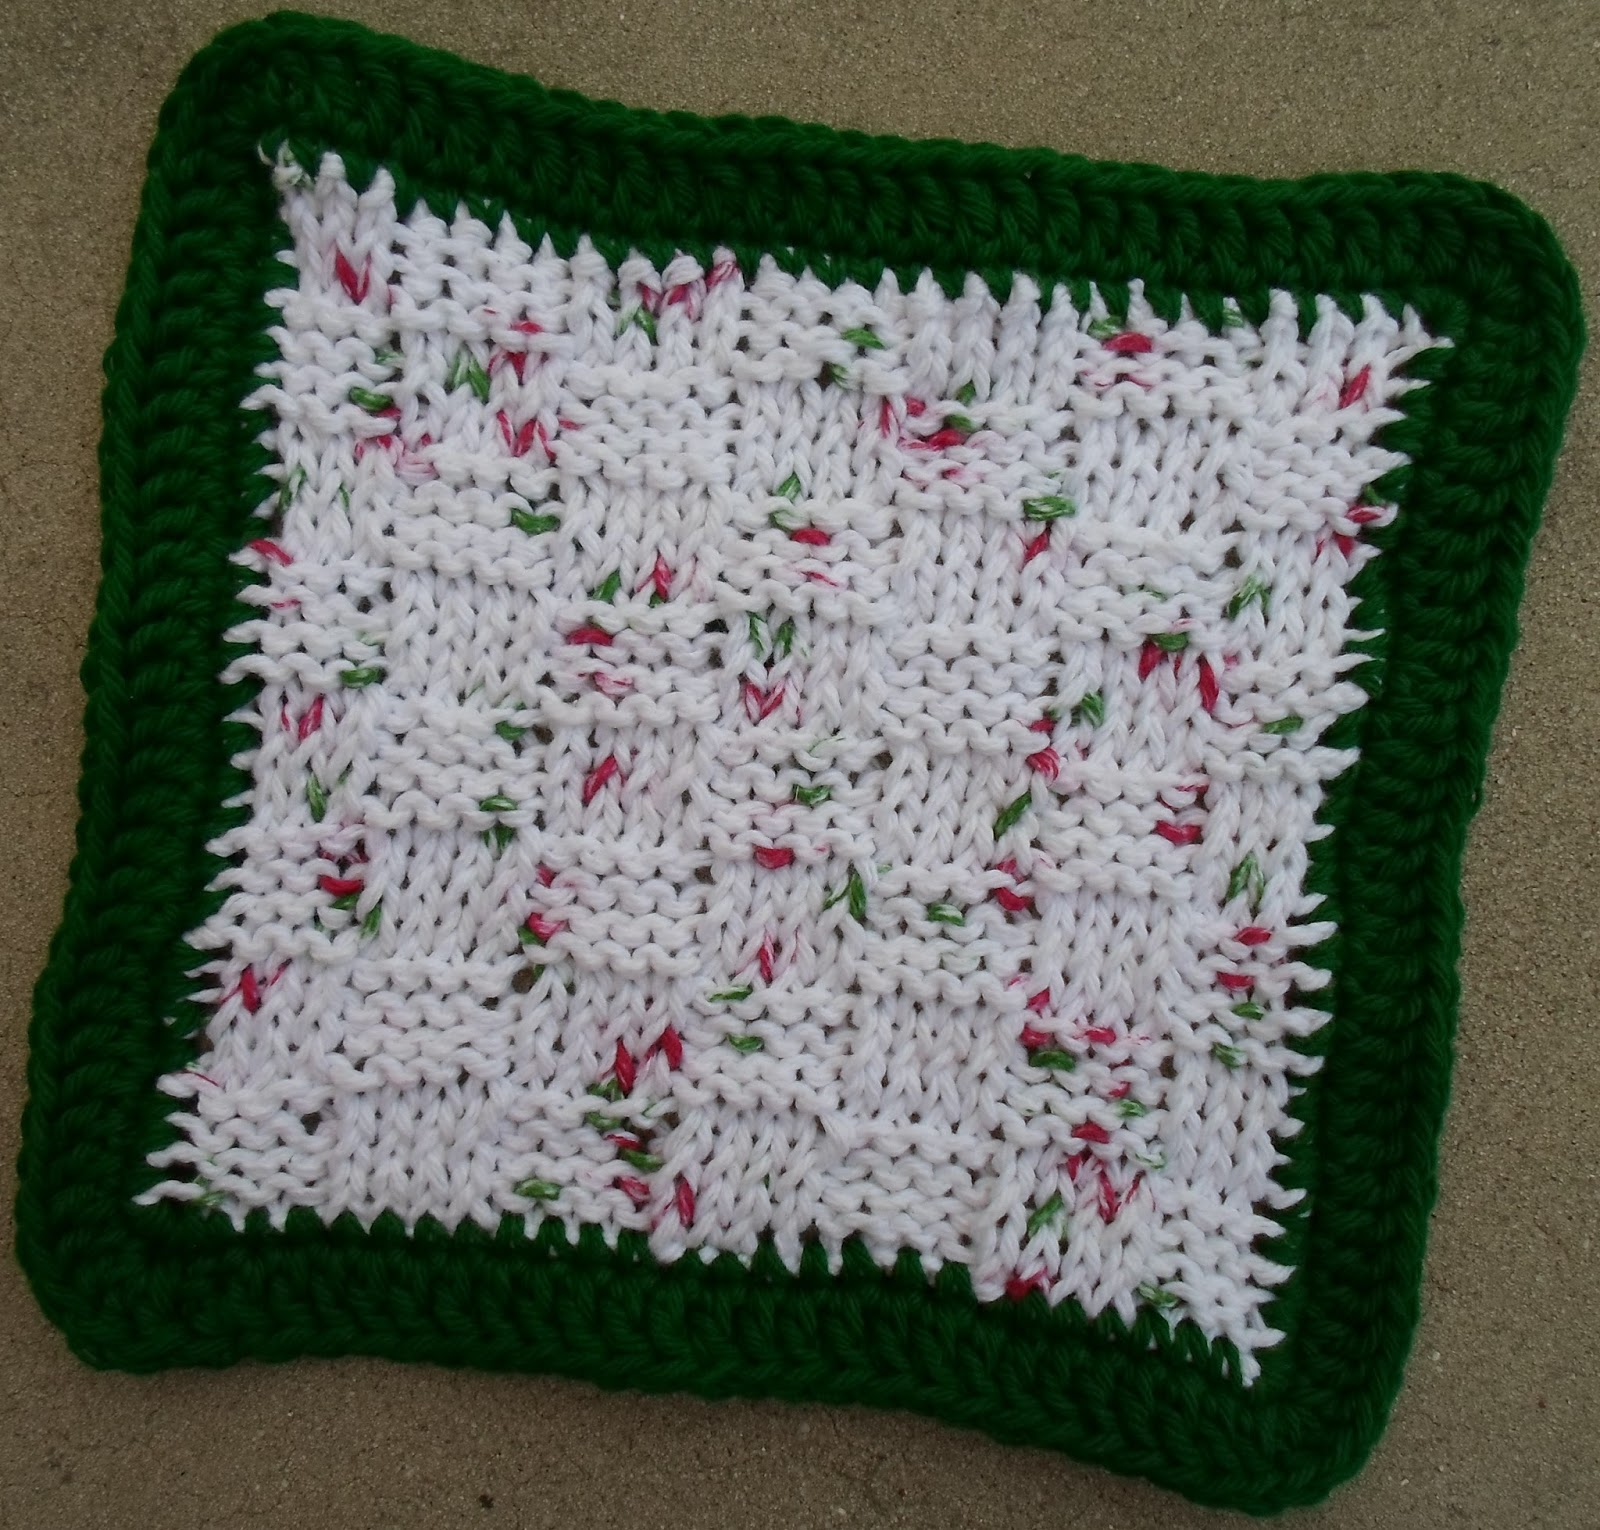 Happier Than A Pig In Mud: Basket-Weave Knit Dishcloth with Crochet Border